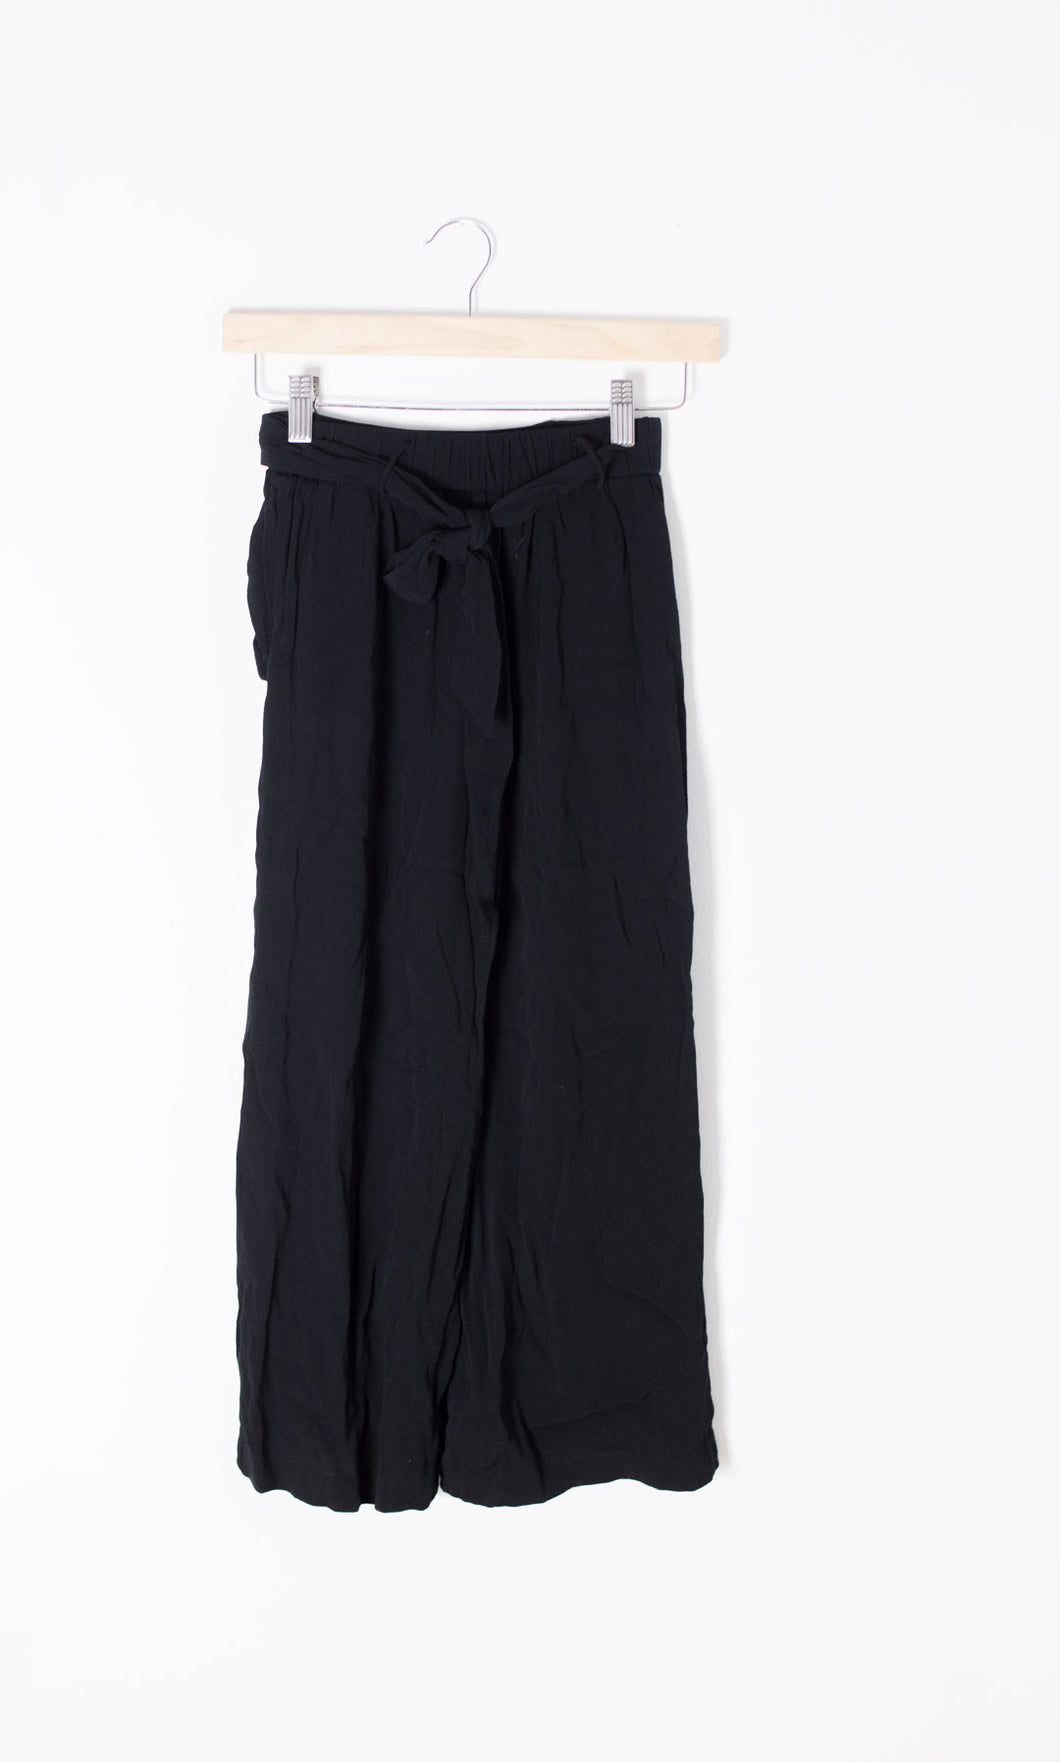 (XXS) WILFRED PANTS